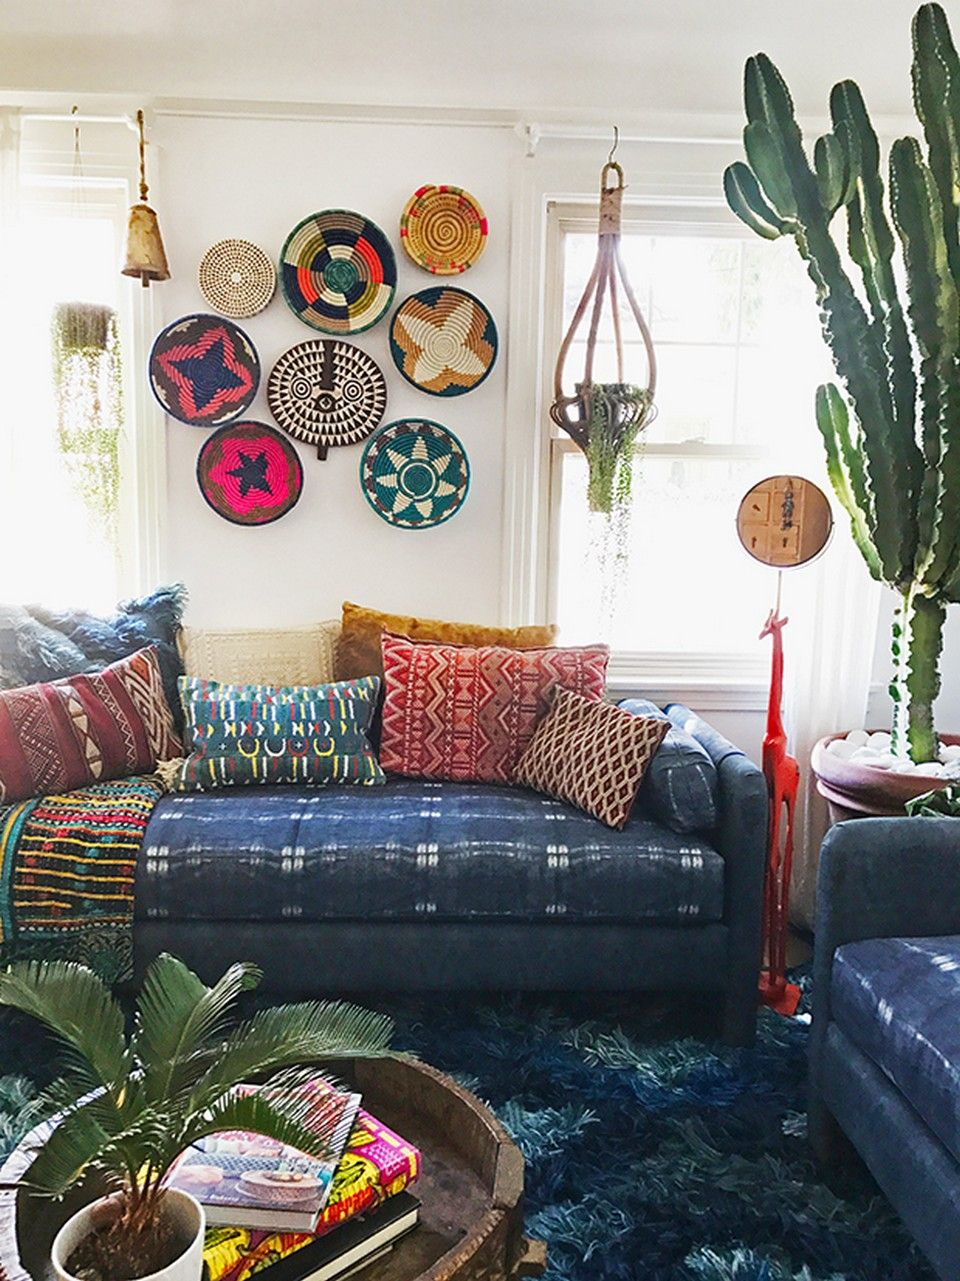 2018 Bohemian Interior Design Trends: 90+ Amazing Tips And